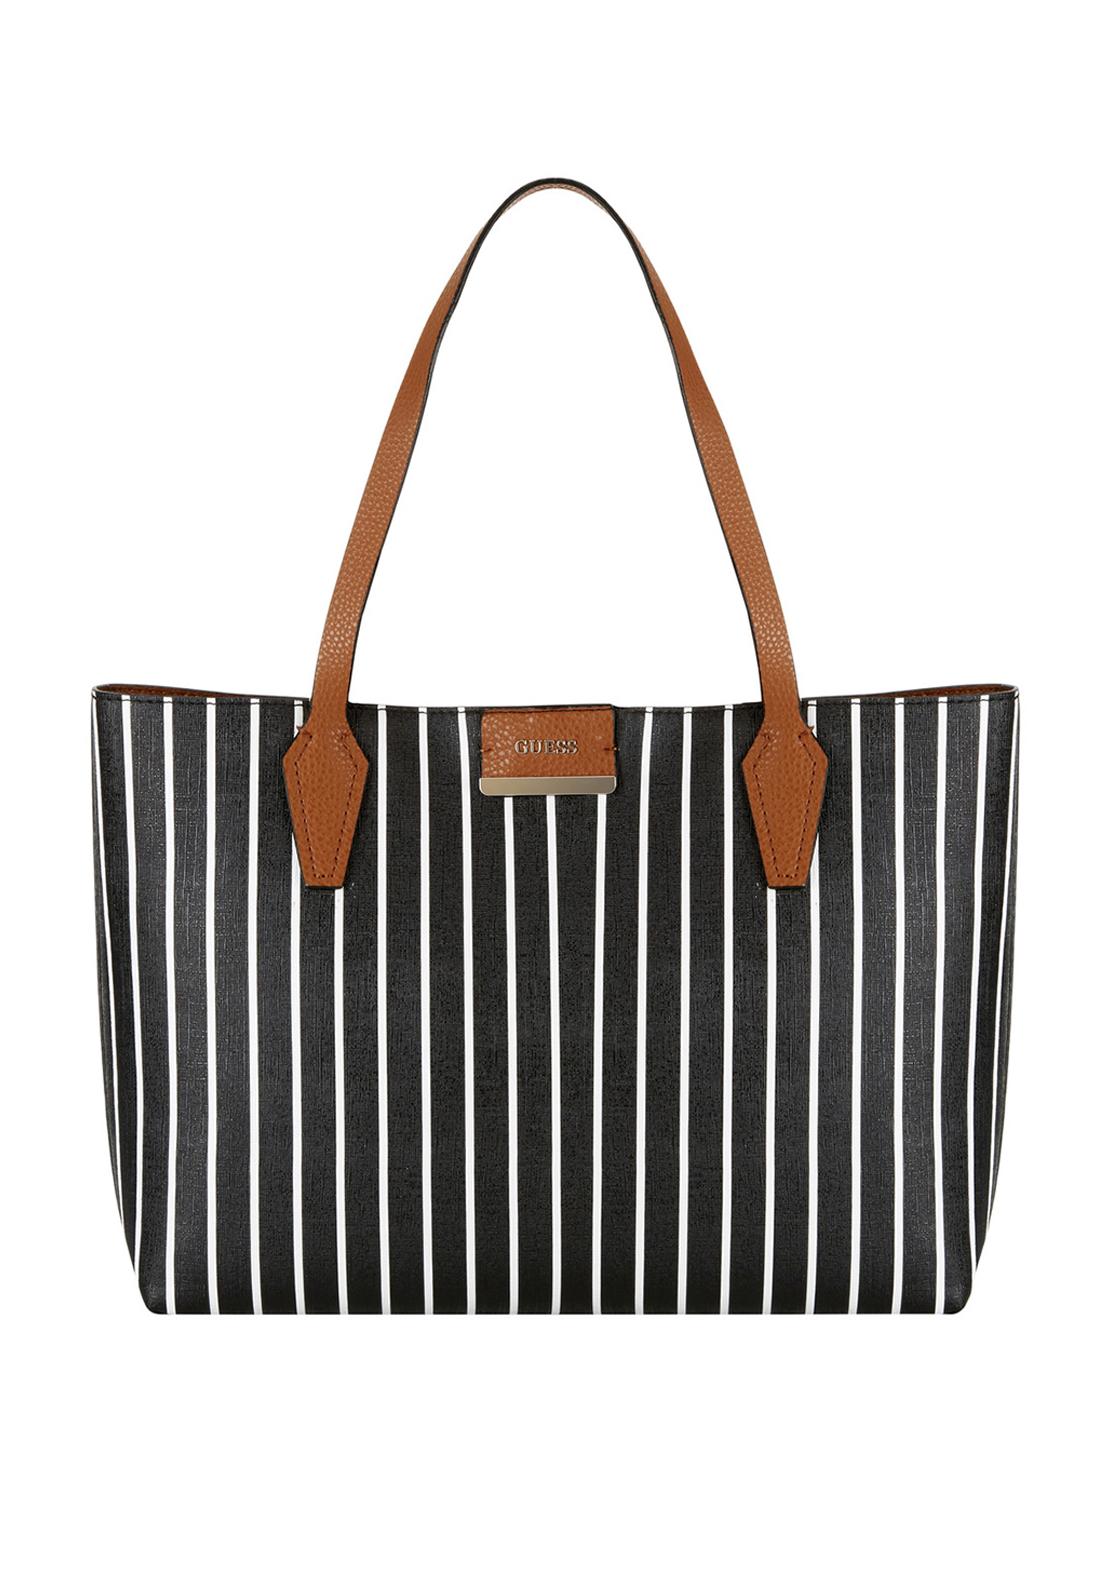 Guess Bobbi Reversible Tote Bag, Black & White